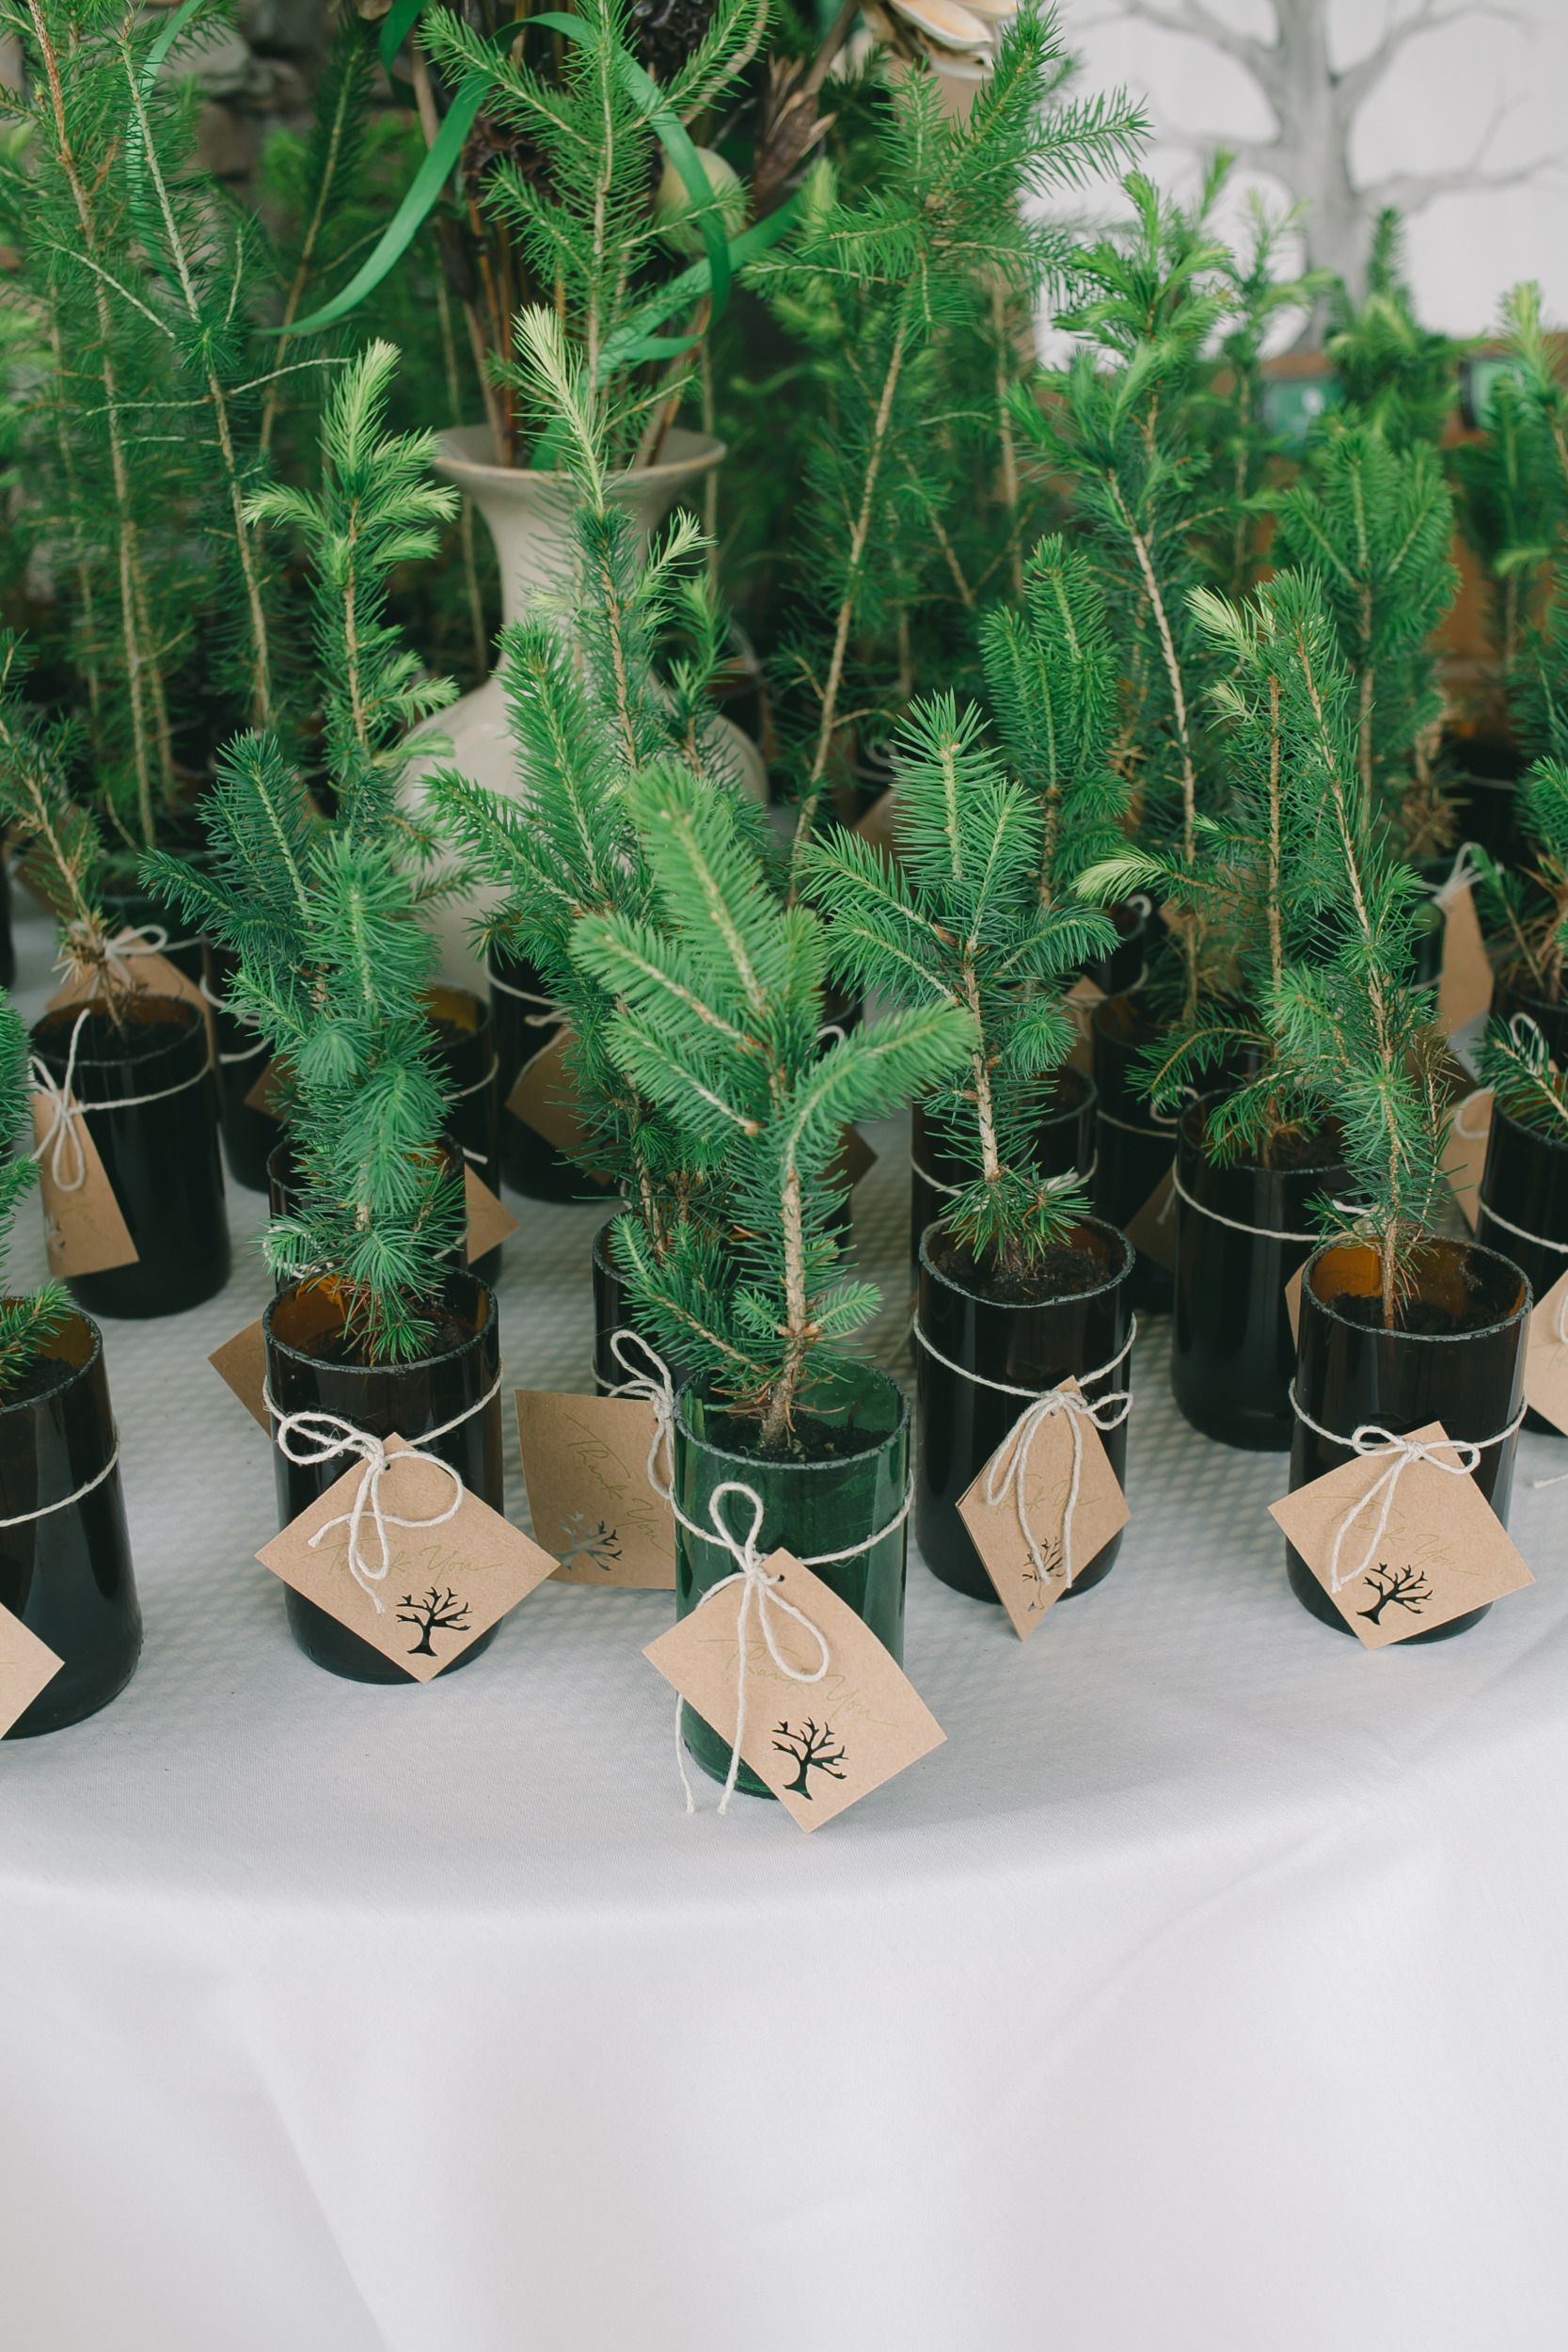 Tree Themed Wedding | Wedding Favors | Pinterest | Favours, Couples ...